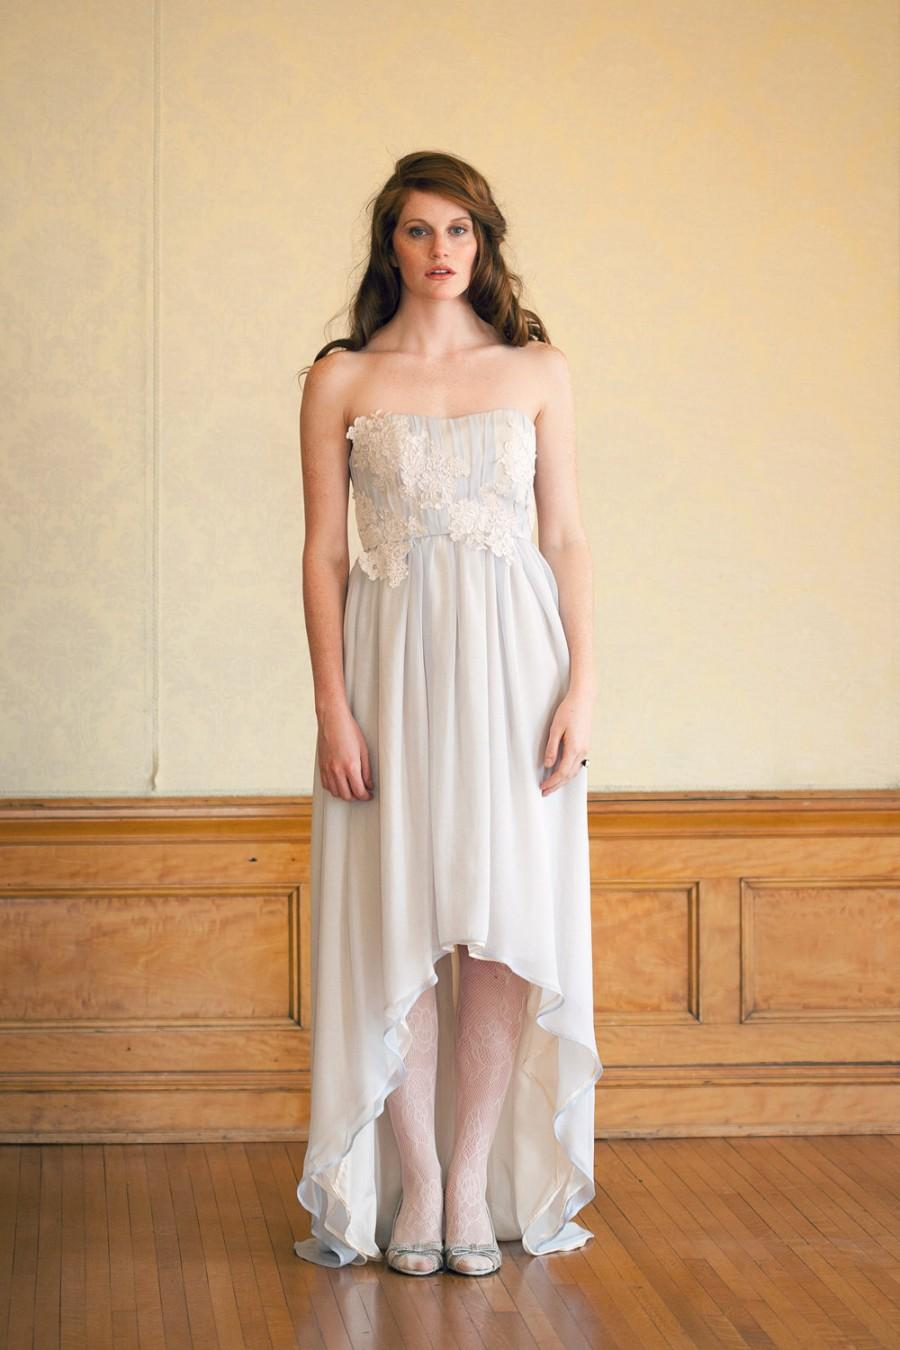 Blue Bohemian Strapless Wedding Dress With Lace And High-Low Skirt ...